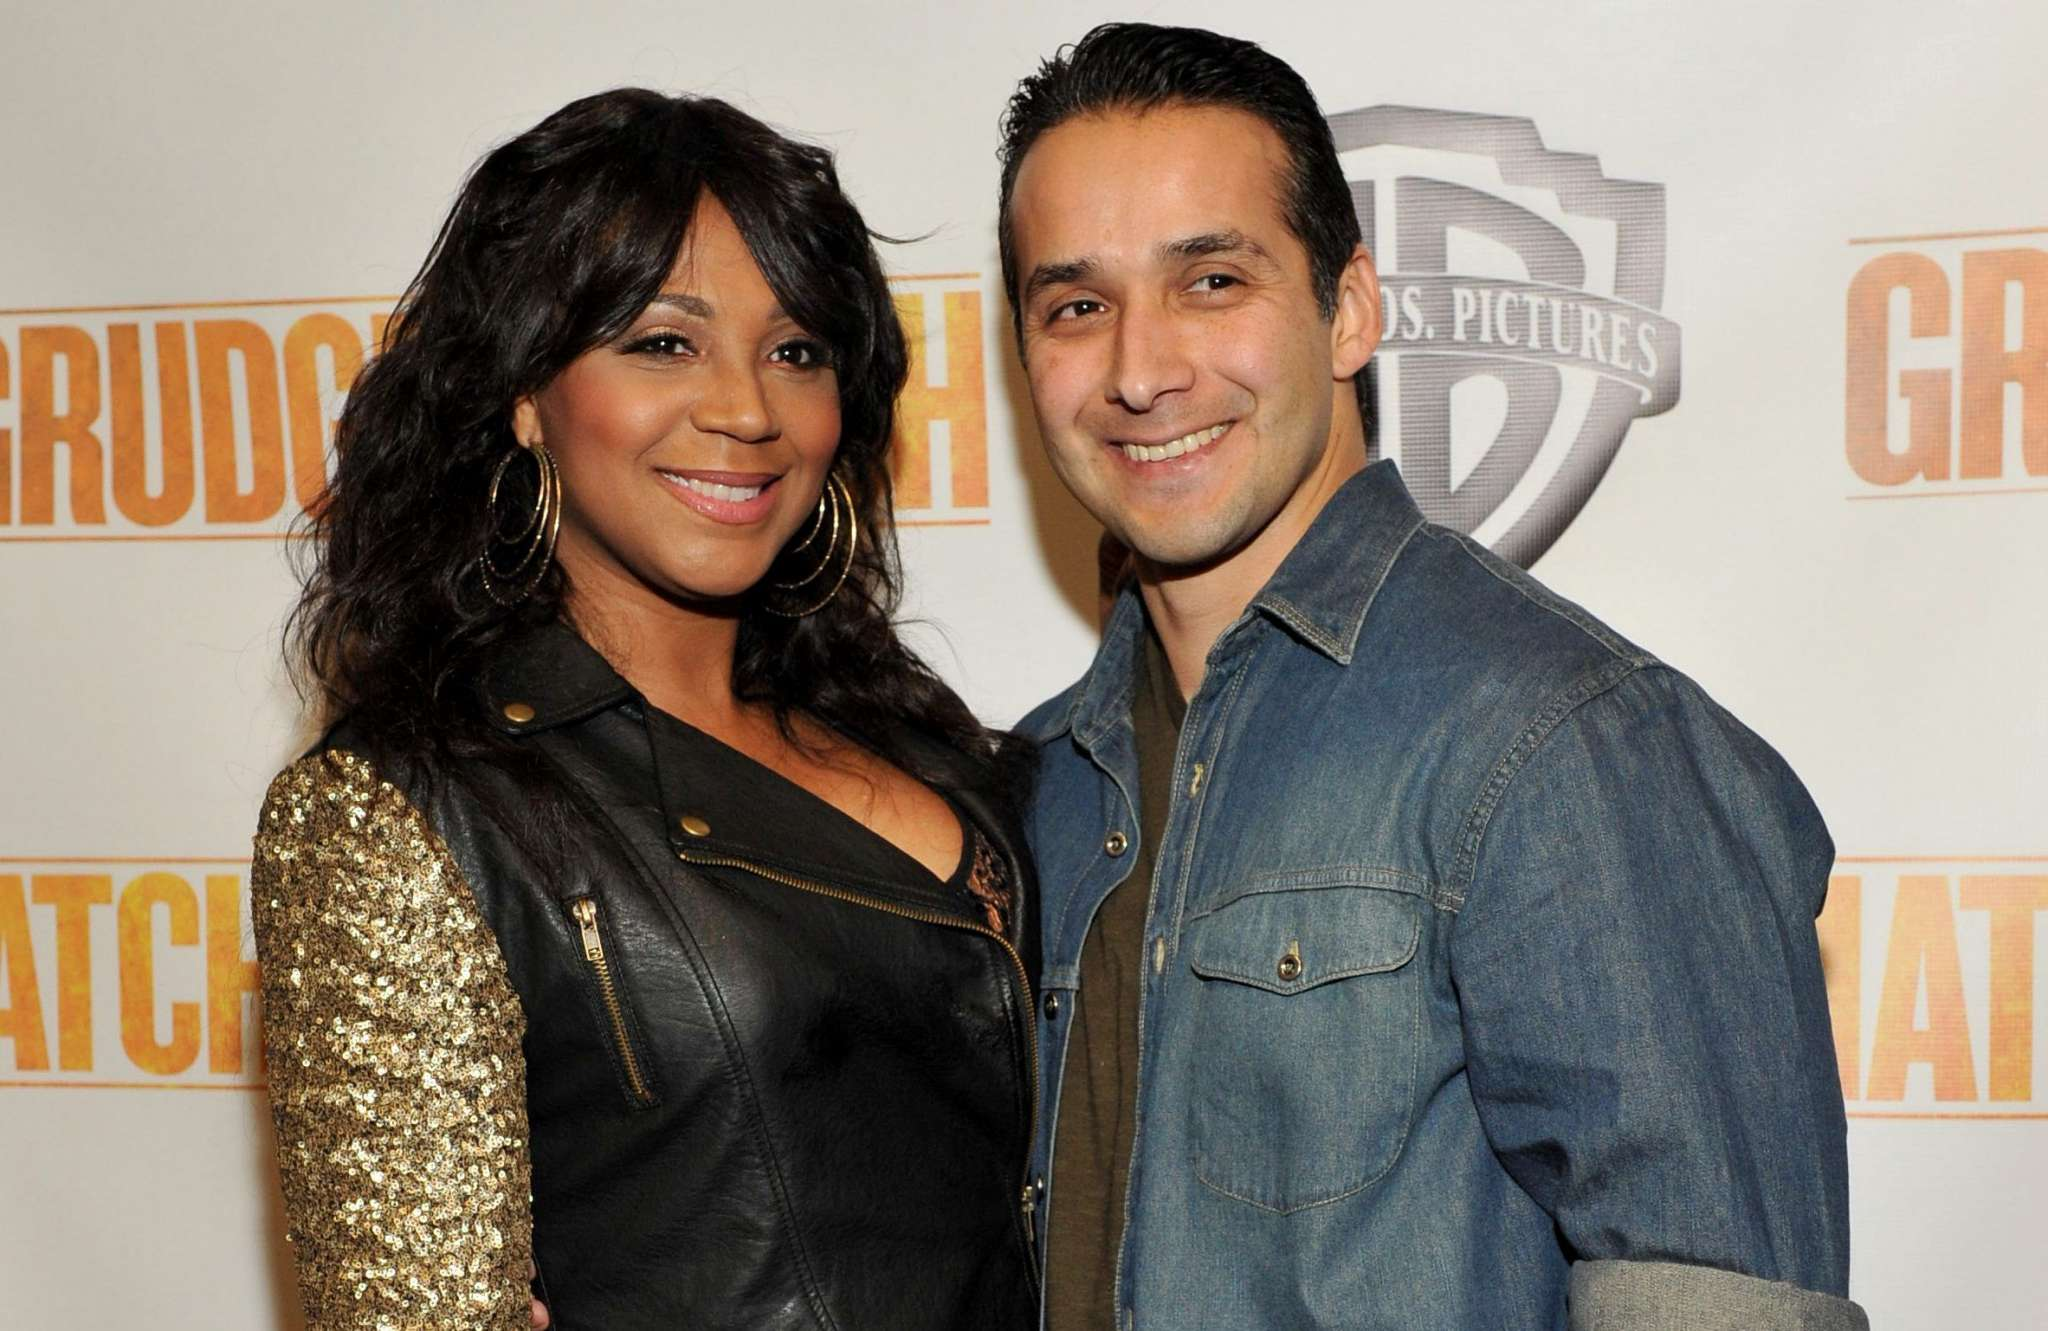 Tamar Braxton's Sister, Trina Braxton Receives Sad News: Her Ex-Husband, Gabe Solis Died